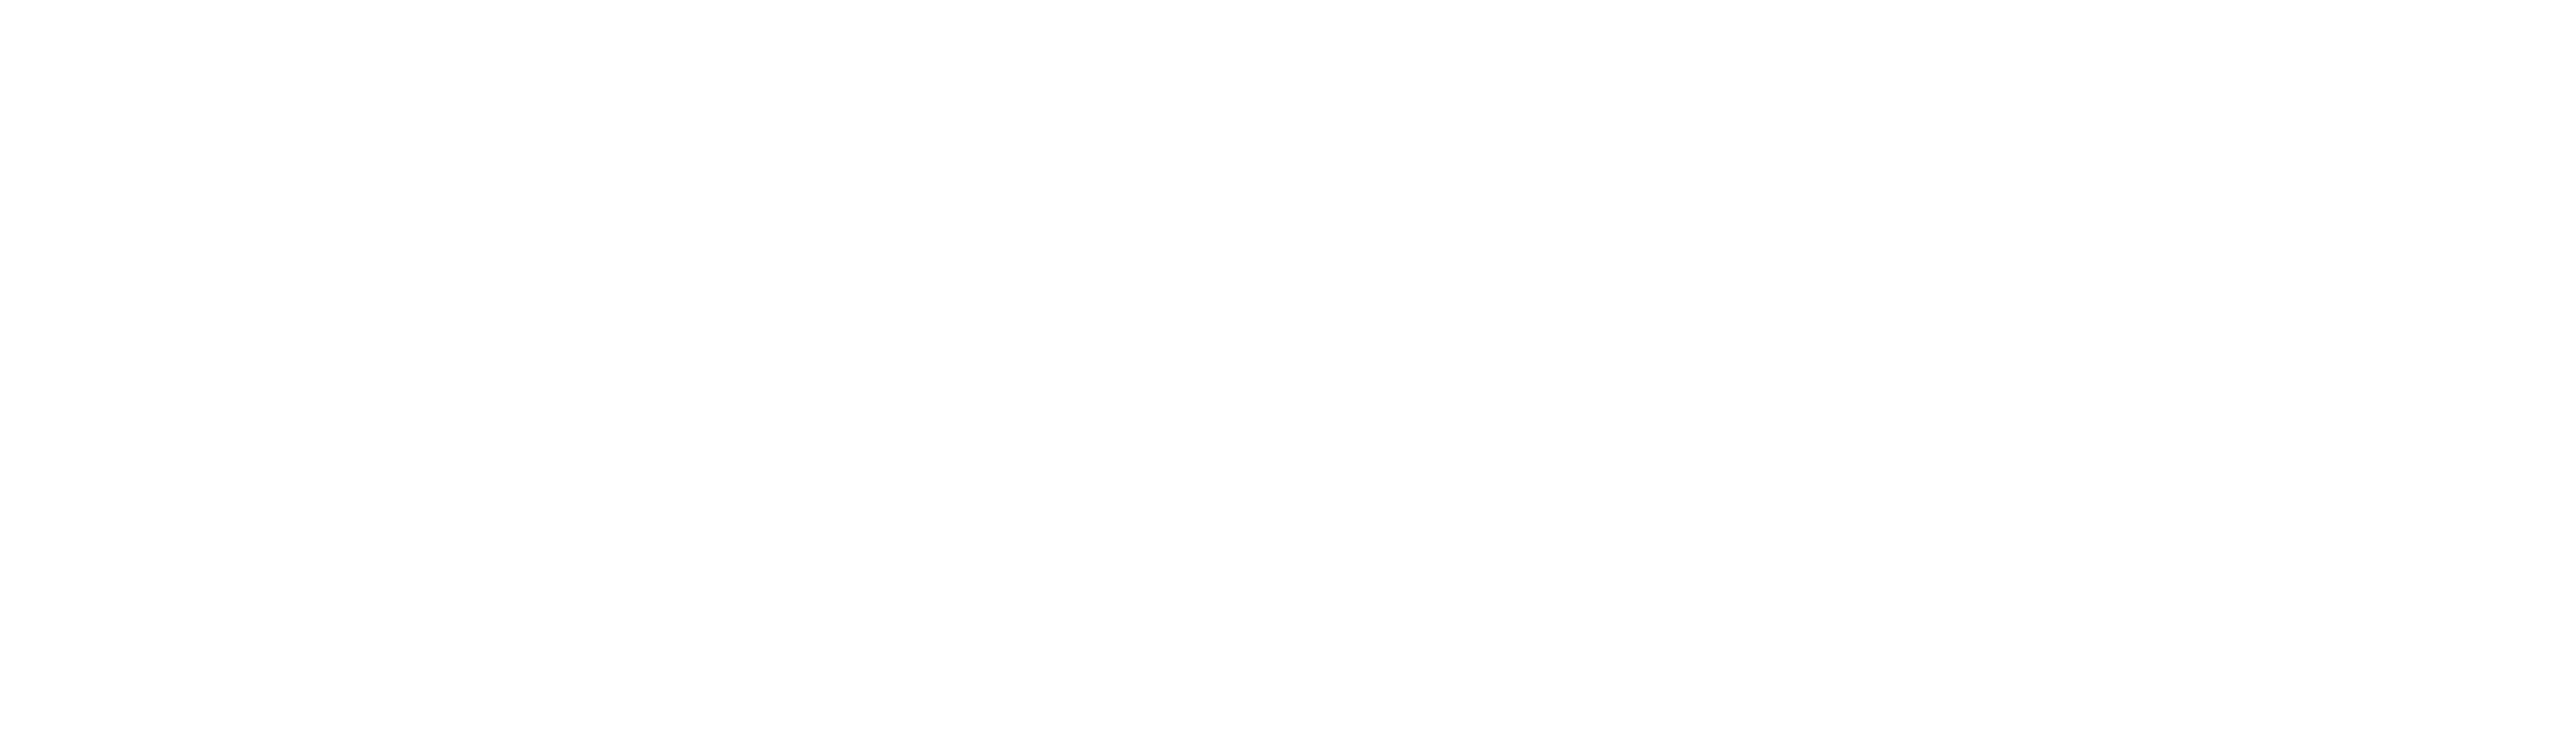 Live Well. Be Well. Springwell